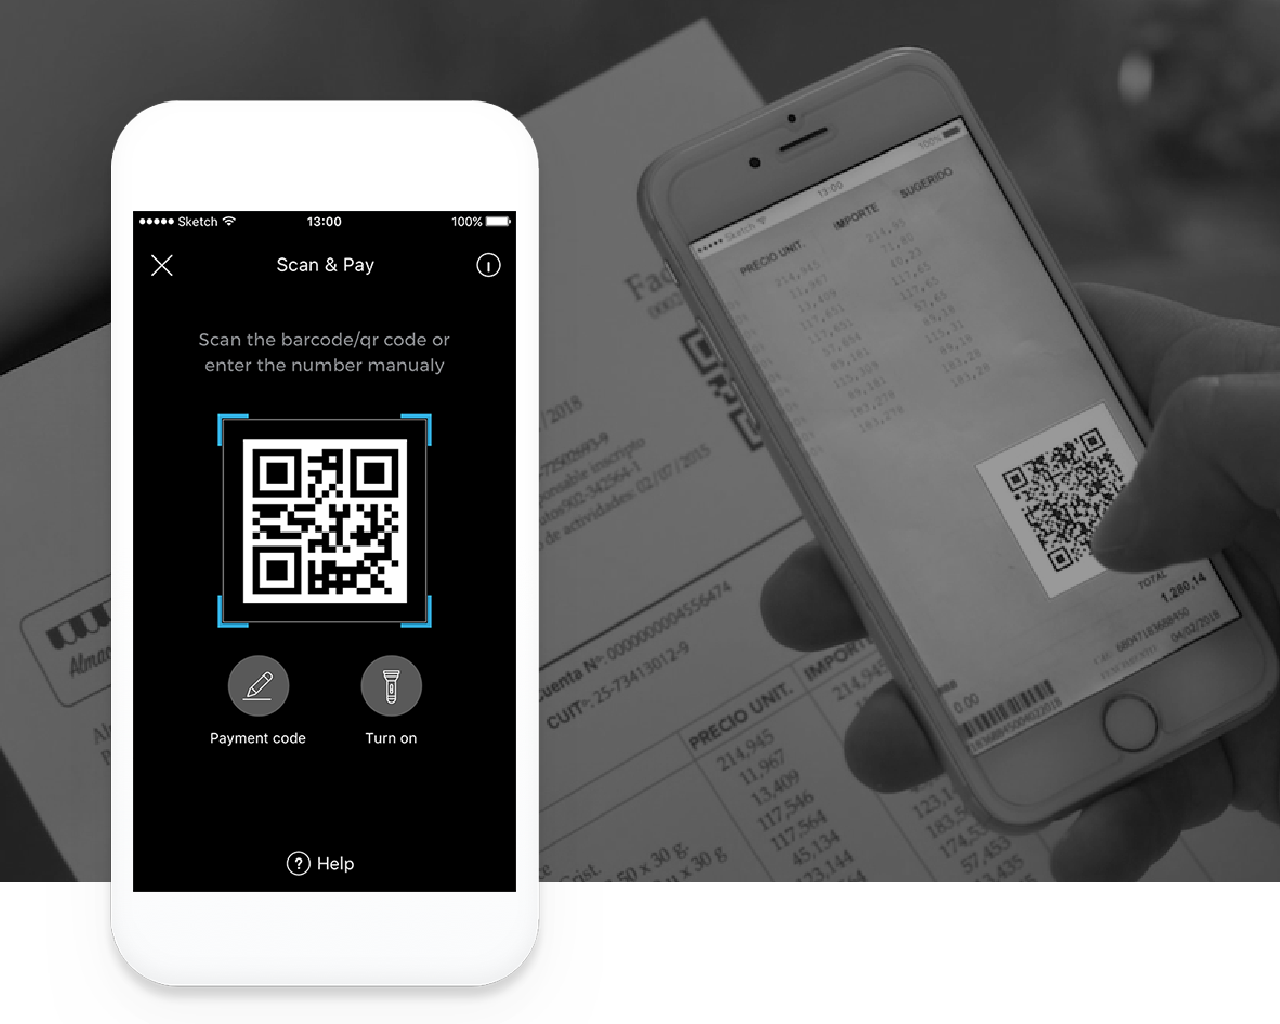 QR Code Technology - Businesses accept payments by displaying a QR code identifying the business, scanned by customers on the app- Lightweight, feature-rich image- Transaction fields are prepopulated in QR schema or through manual input- QR image can be private: decryption via RedCloud app only